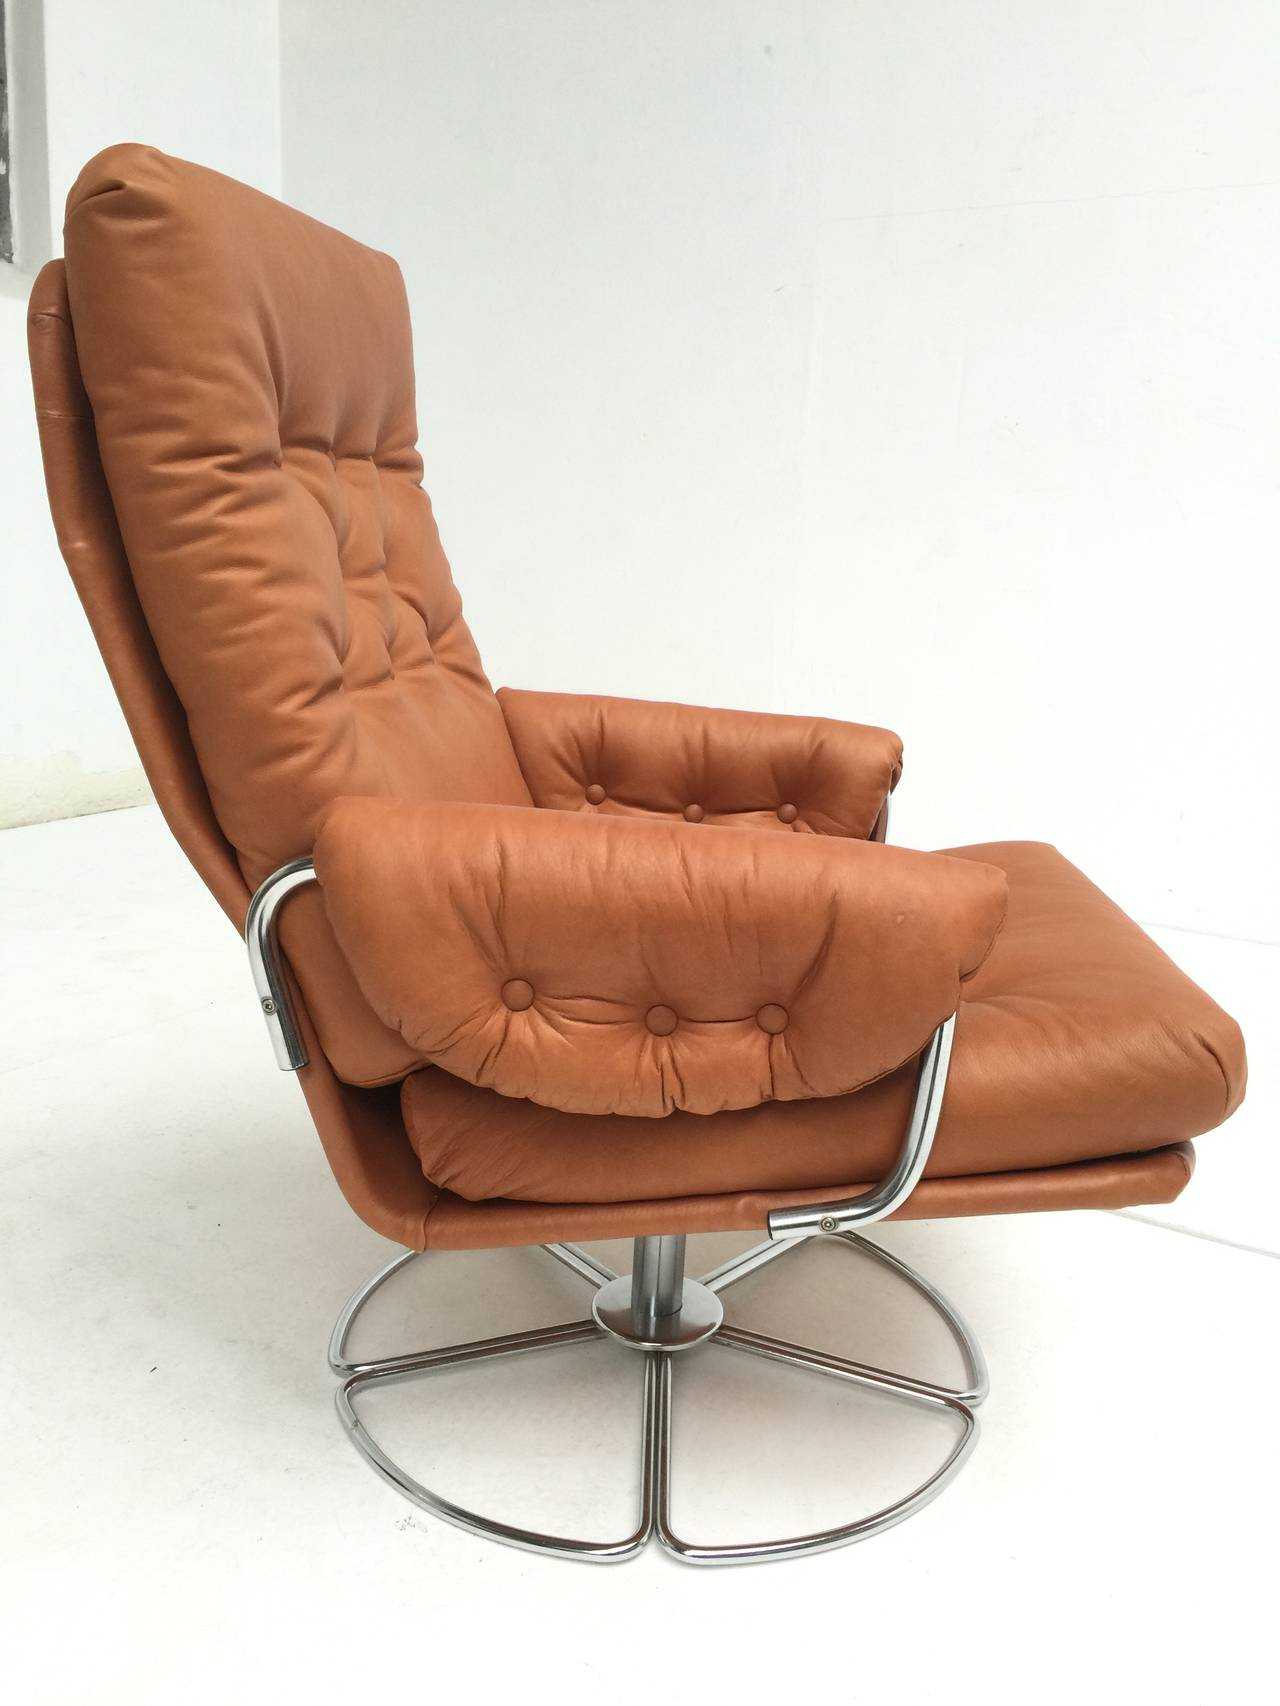 Rare Bruno Mathsson Leather And Chrome Swivel Easy Chair For Dux Sweden 1